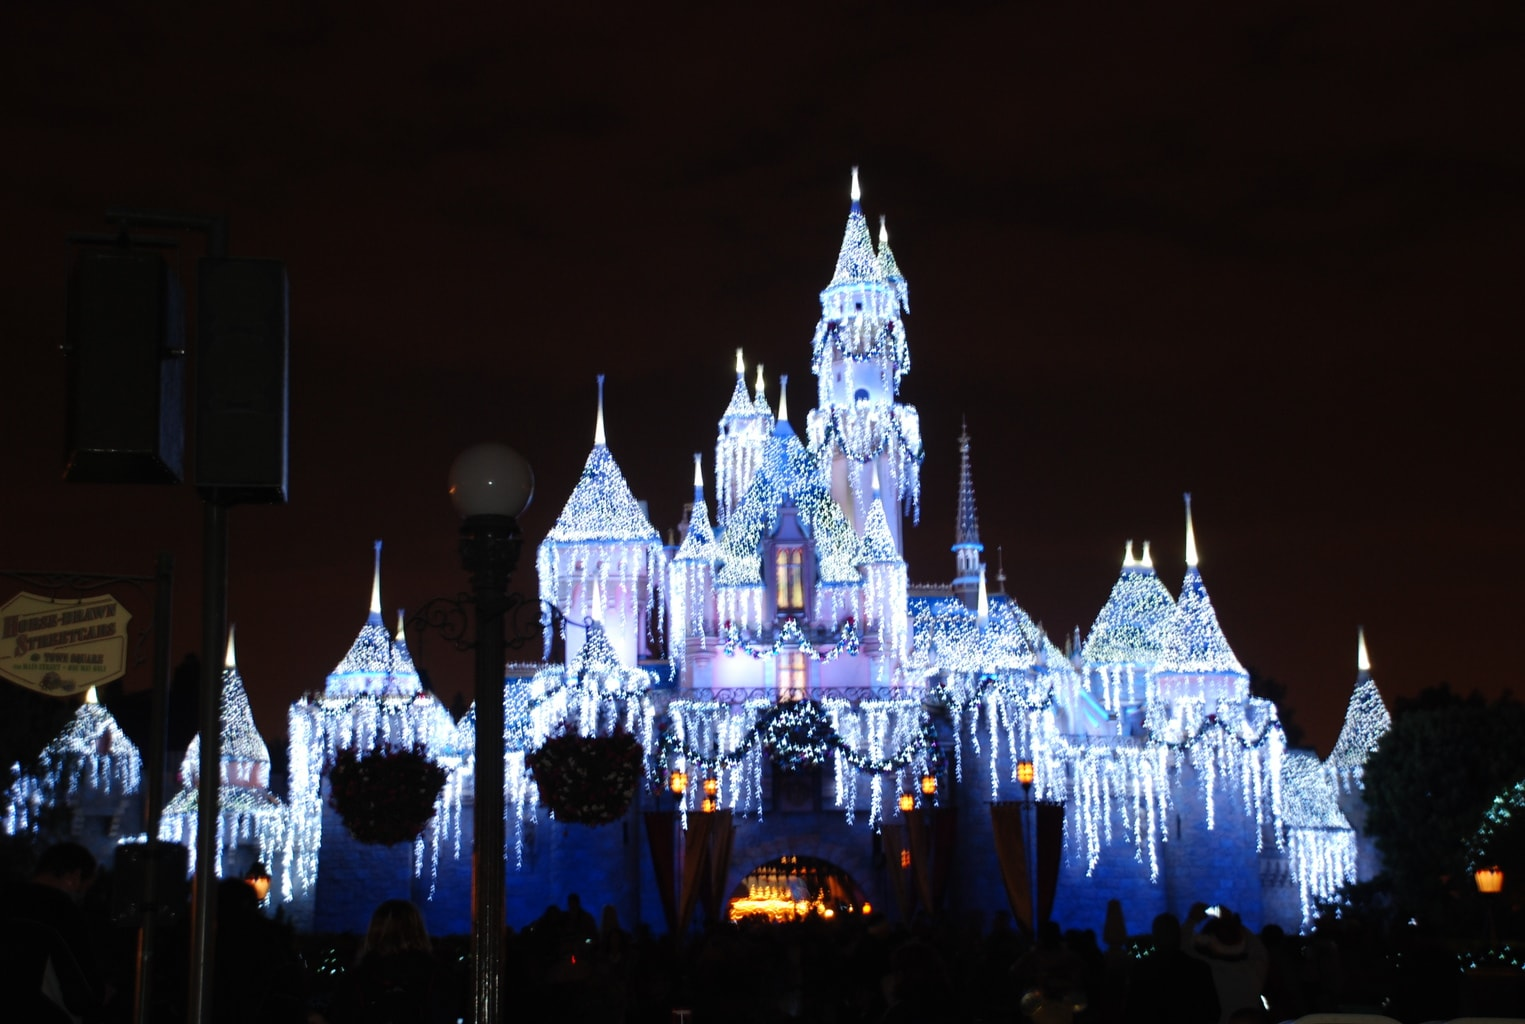 Disney castle decorated with white icicle lights for the holidays